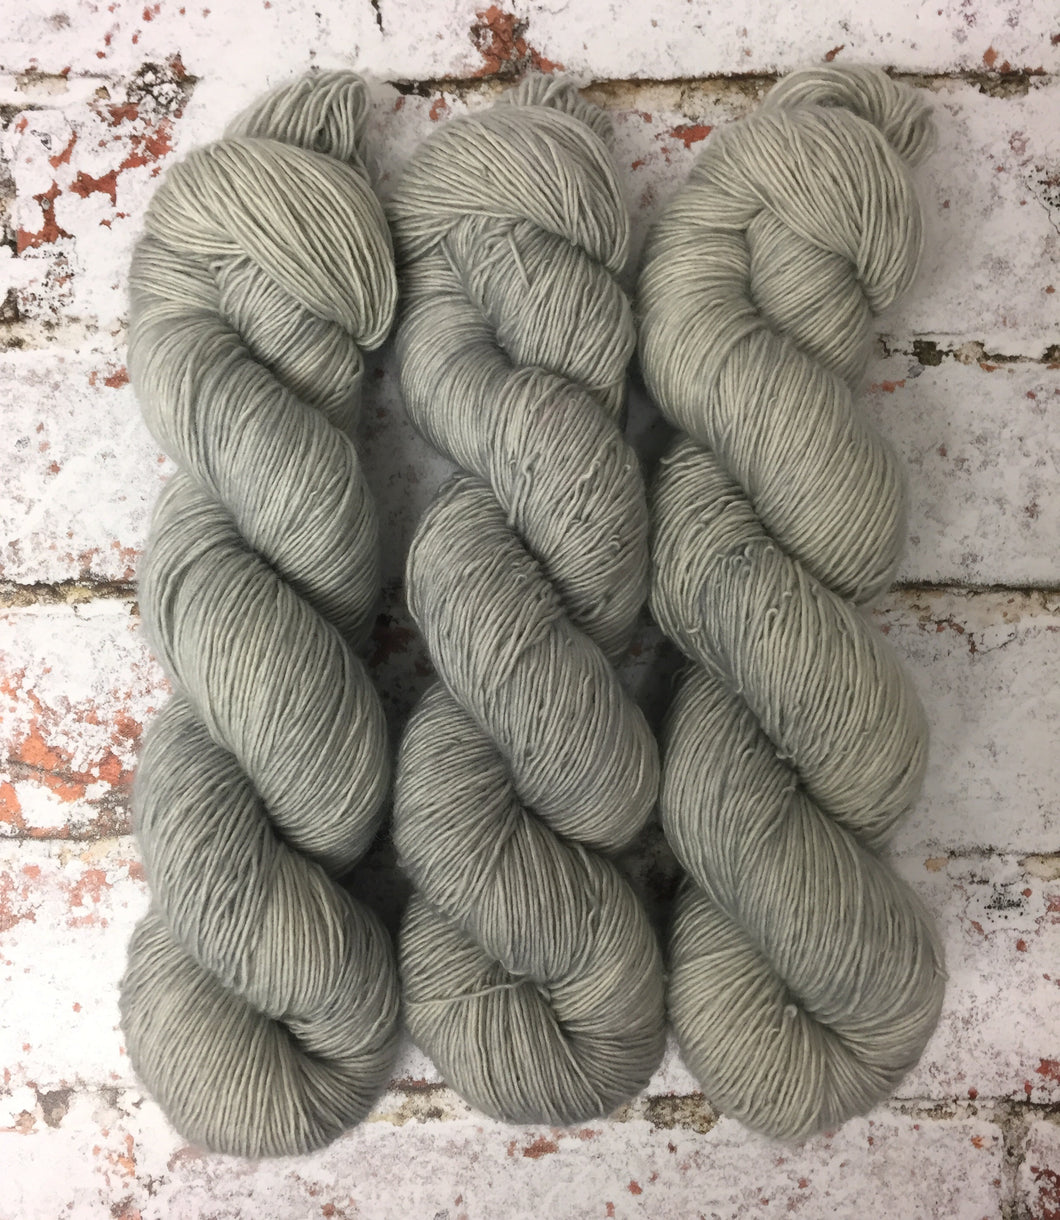 Superwash Merino Single Ply Fingering Yarn, 100g/3.5oz, Misty Day